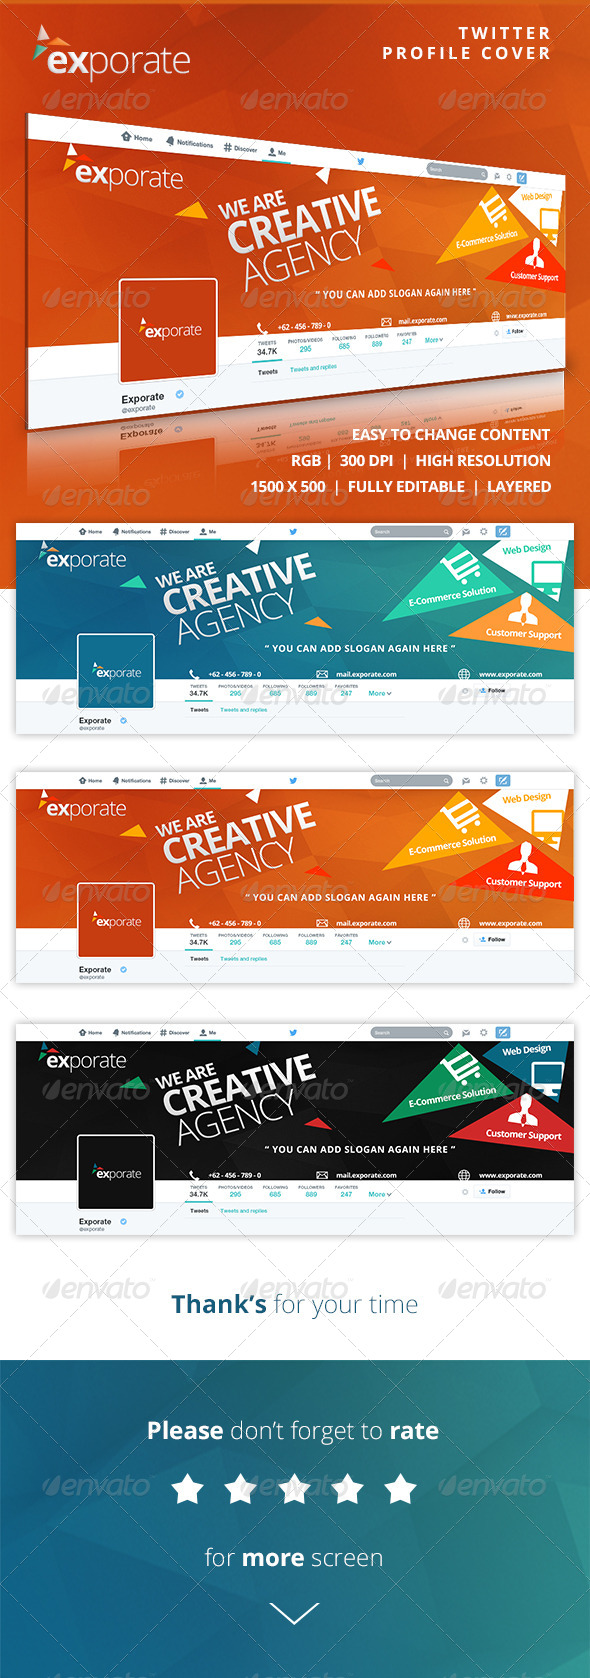 GraphicRiver Exporate Twitter Profile Cover 8141021